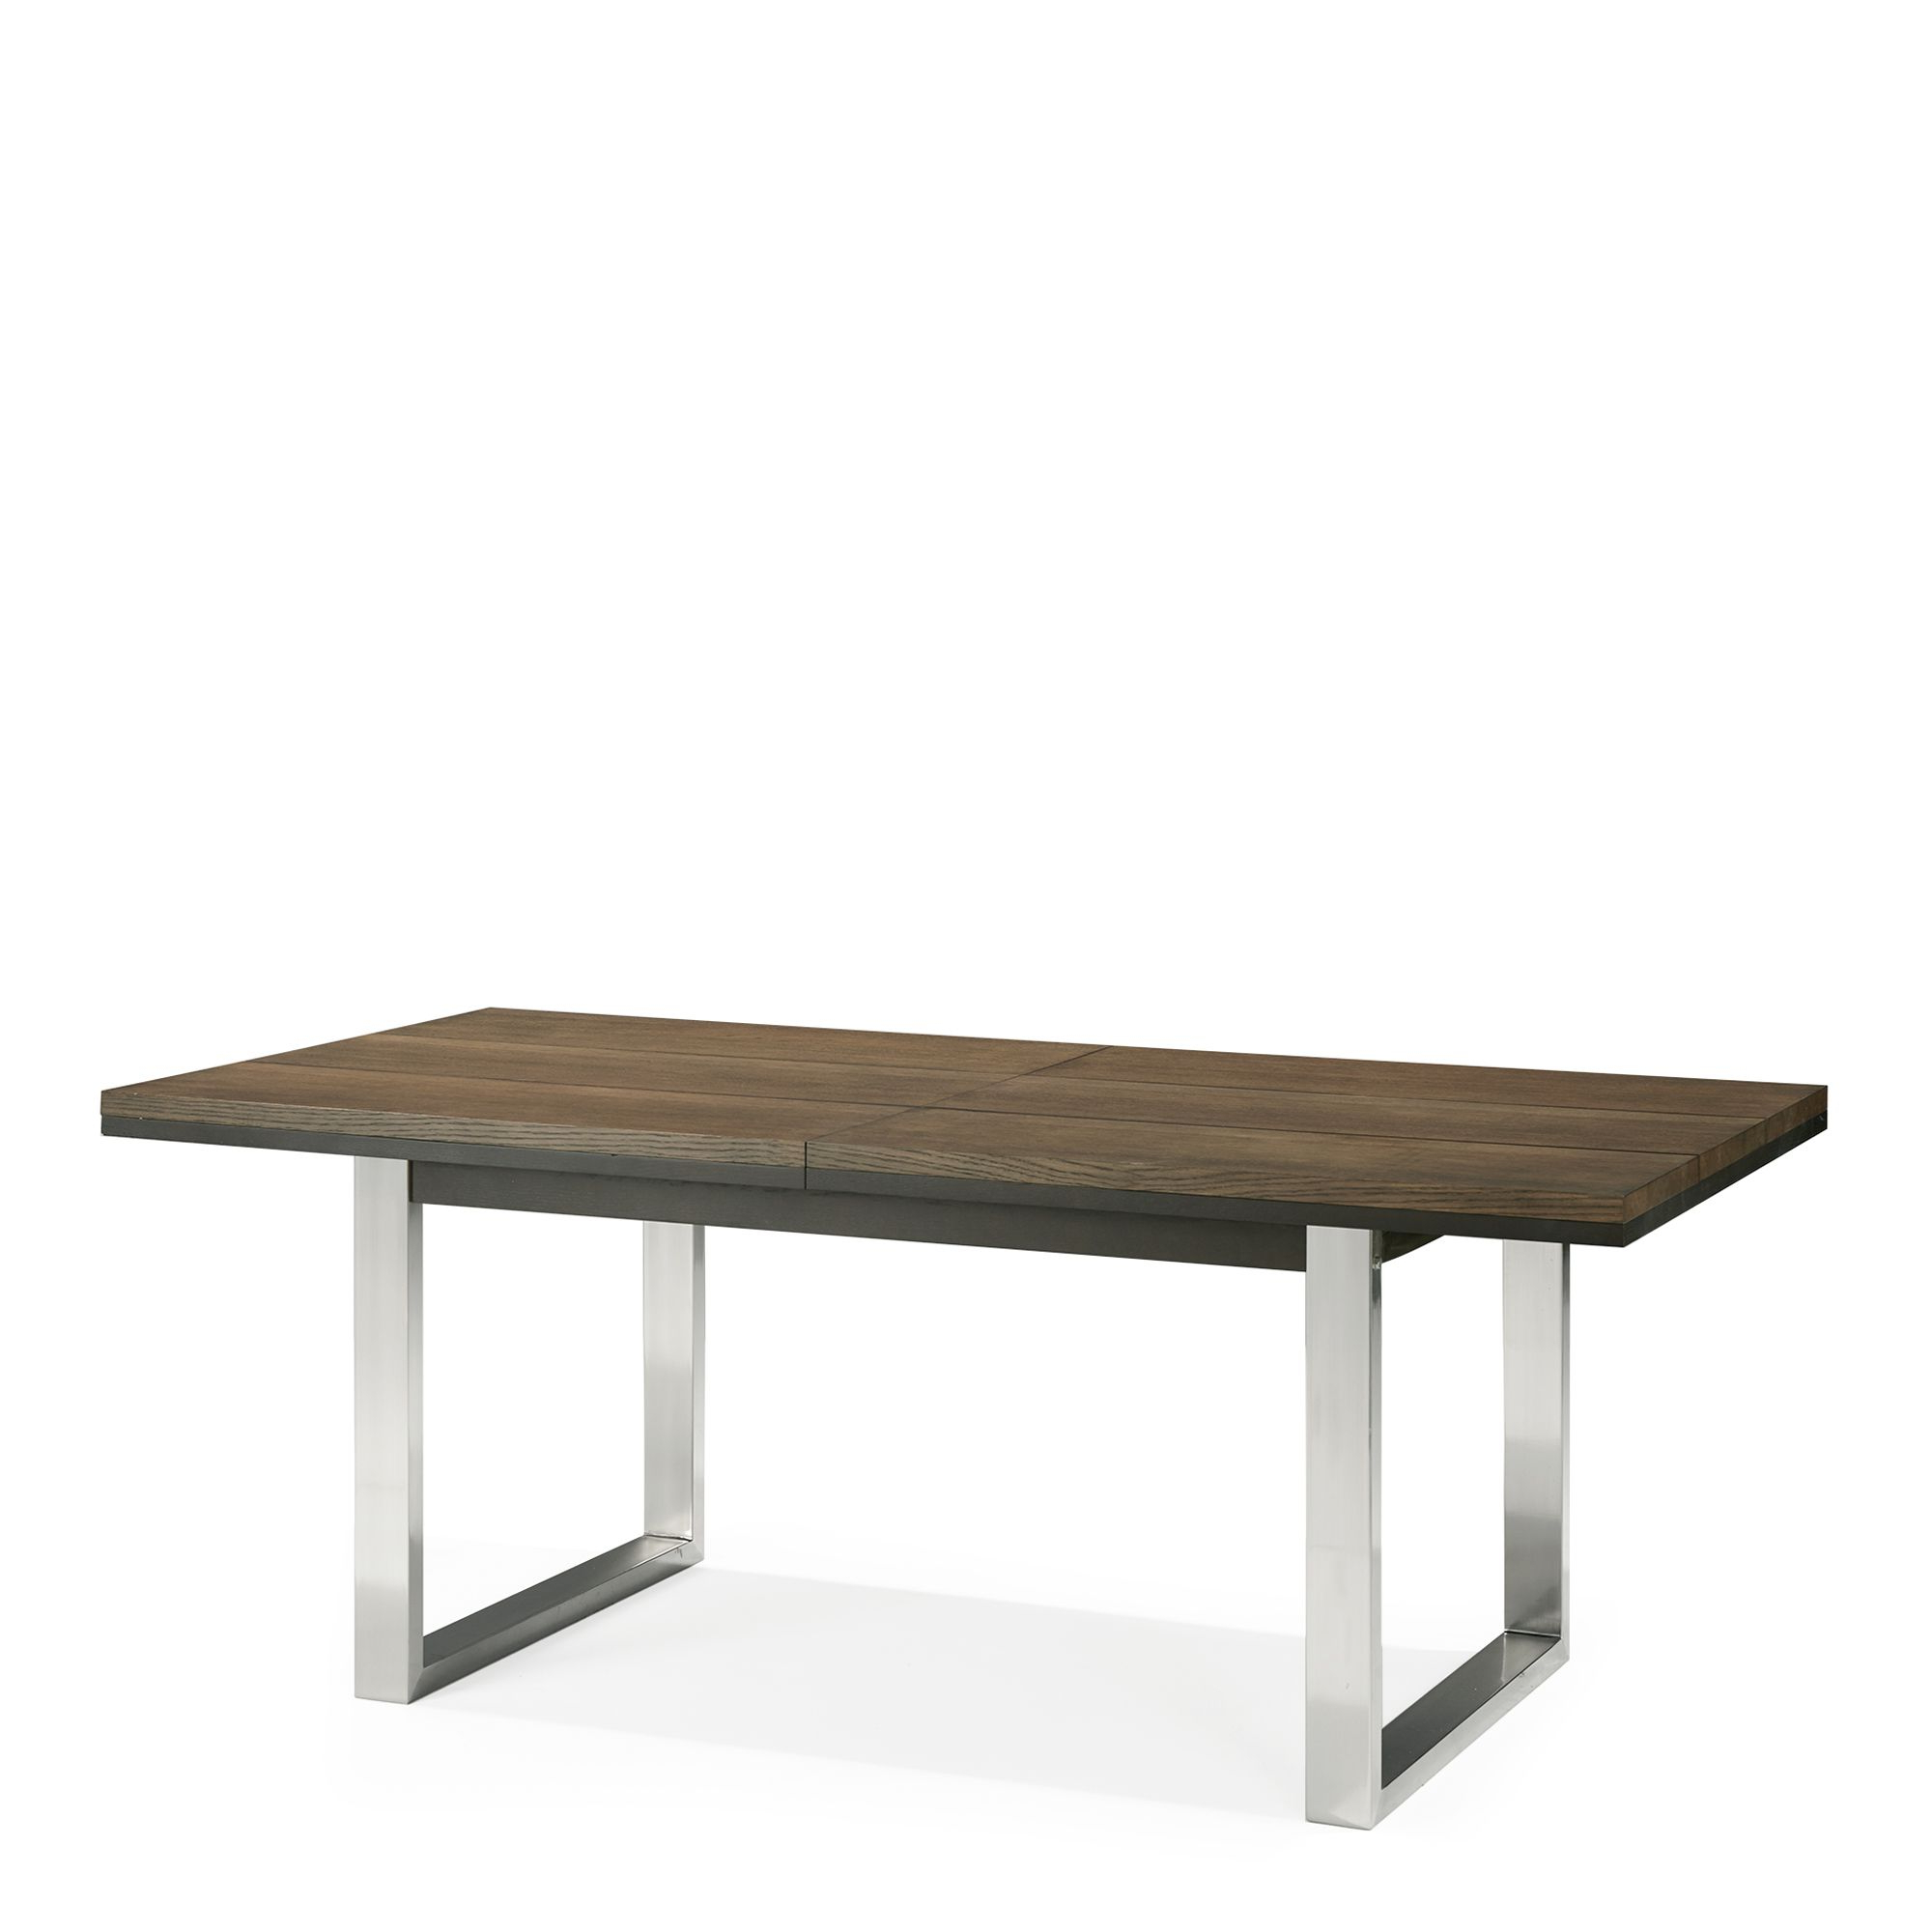 Tivoli 6 8 Extension Dining Table Intended For Latest Provence Accent Dining Tables (Gallery 22 of 30)